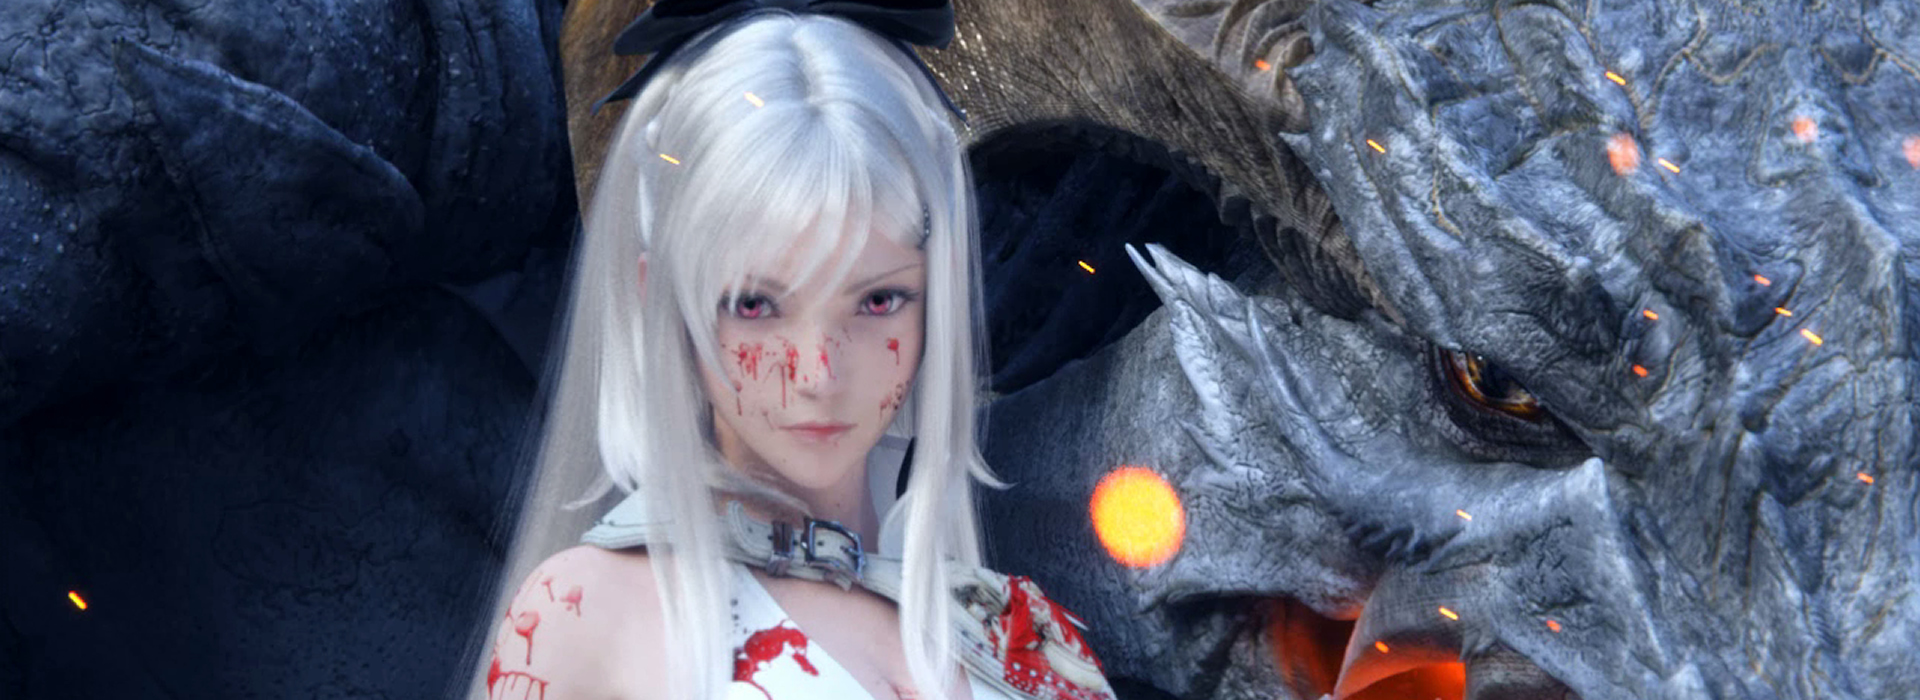 Drakengard 3 Review: An Odd, Disgusting, and Beautiful Mess